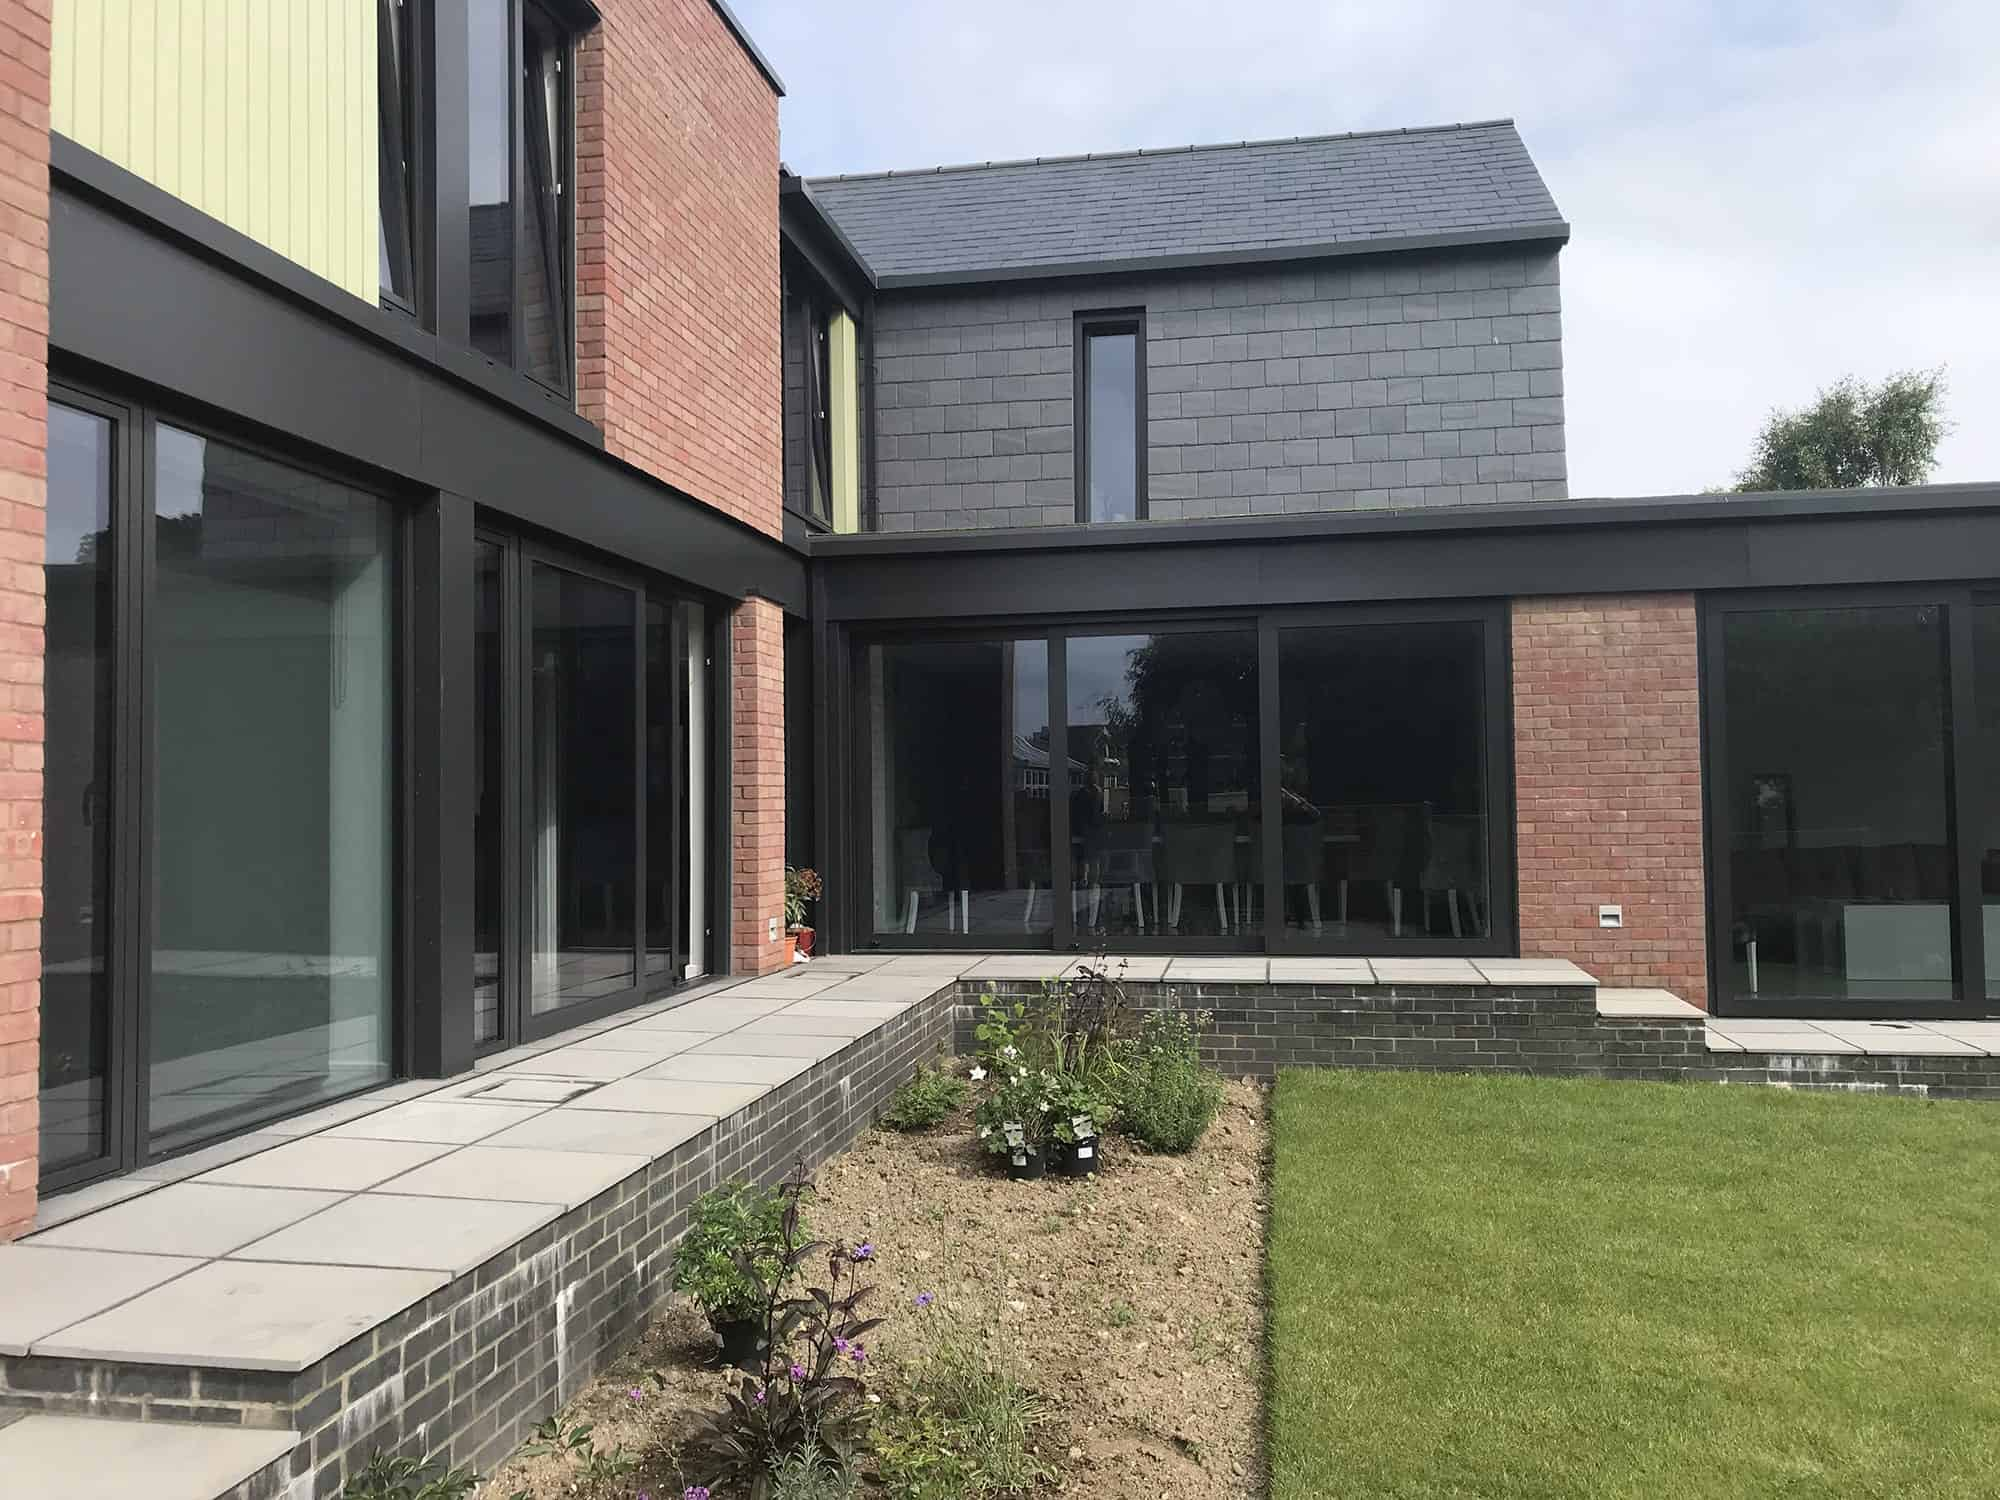 3M Prestige 70 Solar Film Fitted to Residential Property in Buckinghamshire